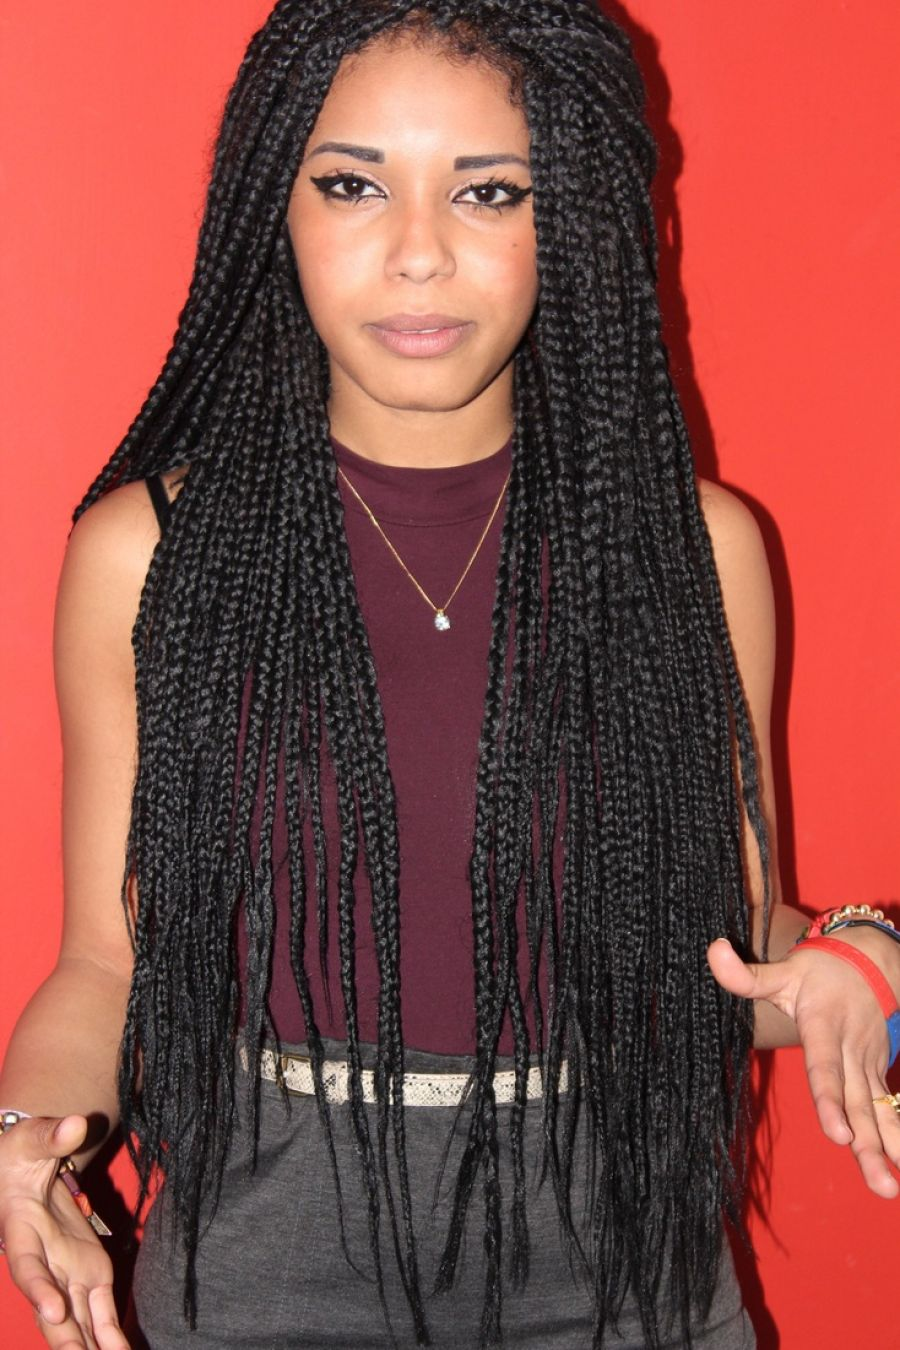 Pictures of Natural Hairstyles On Tumblr